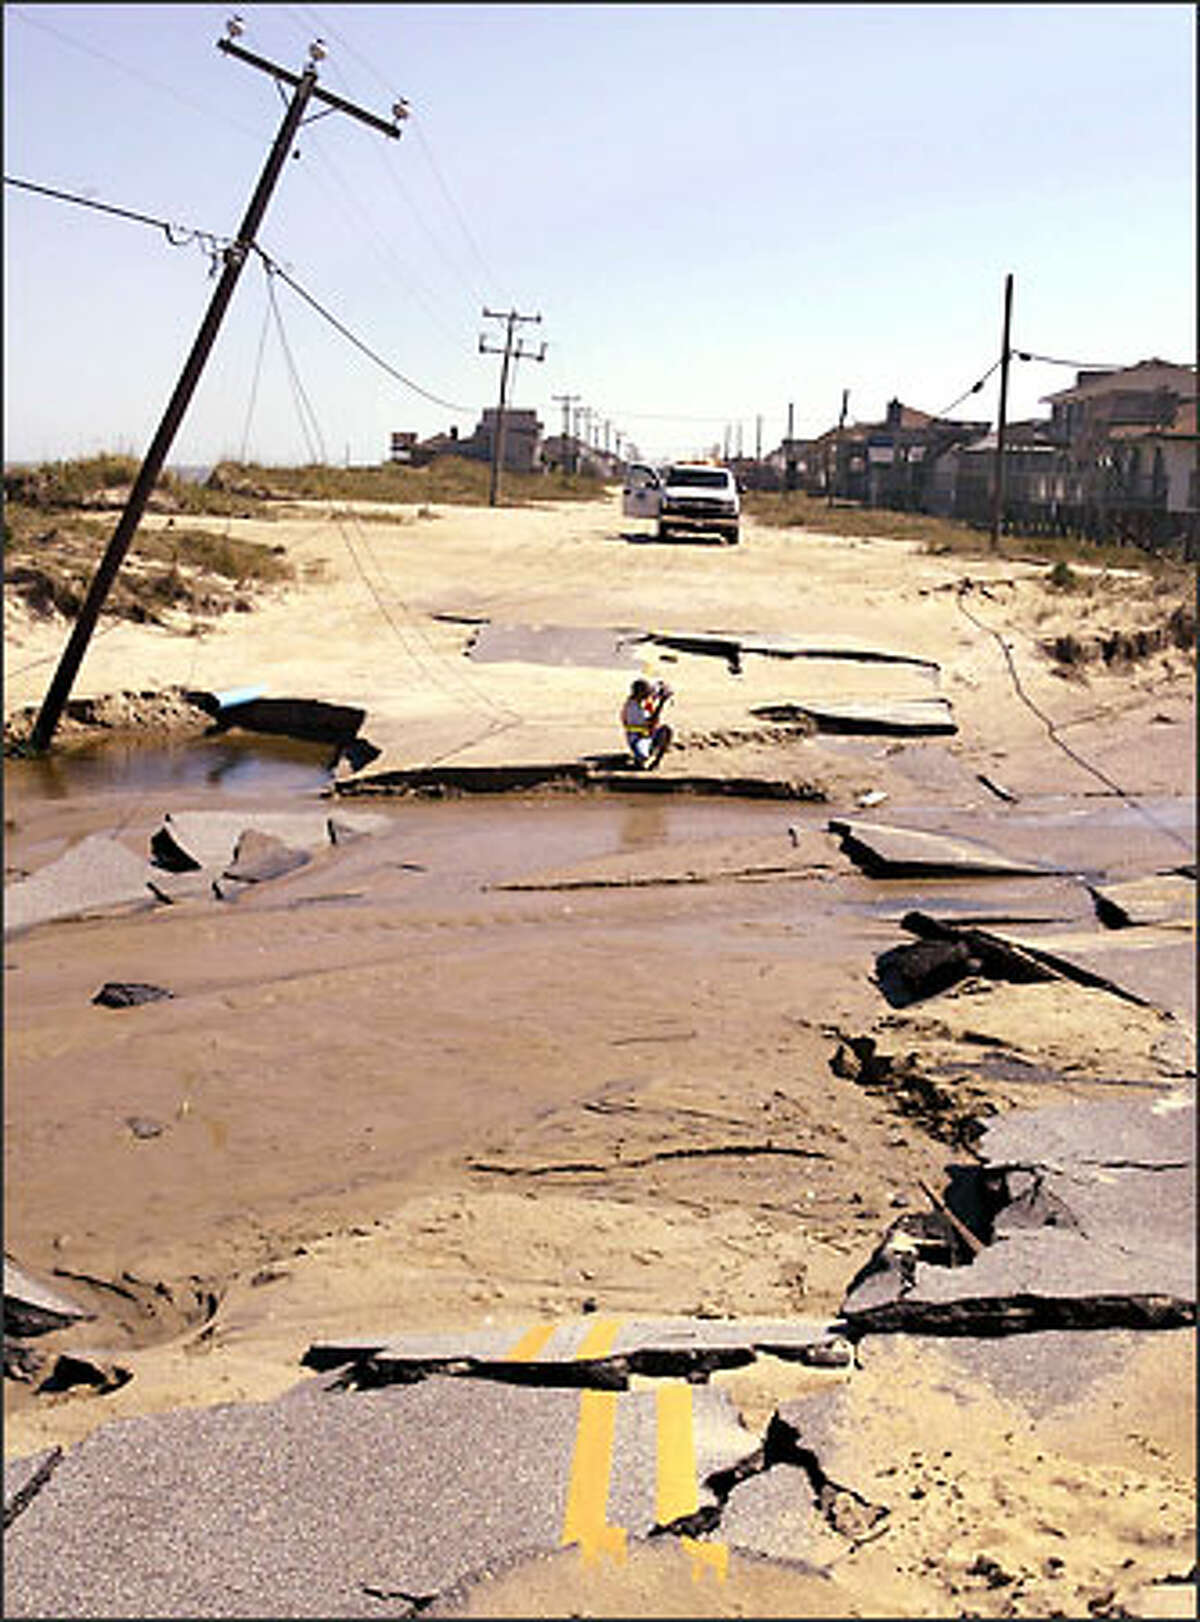 A Dare County official photographs damage done to North Carolina Highway 12 by Hurricane Isabel in Kitty Hawk, N.C. (AP Photo/Bob Jordan)